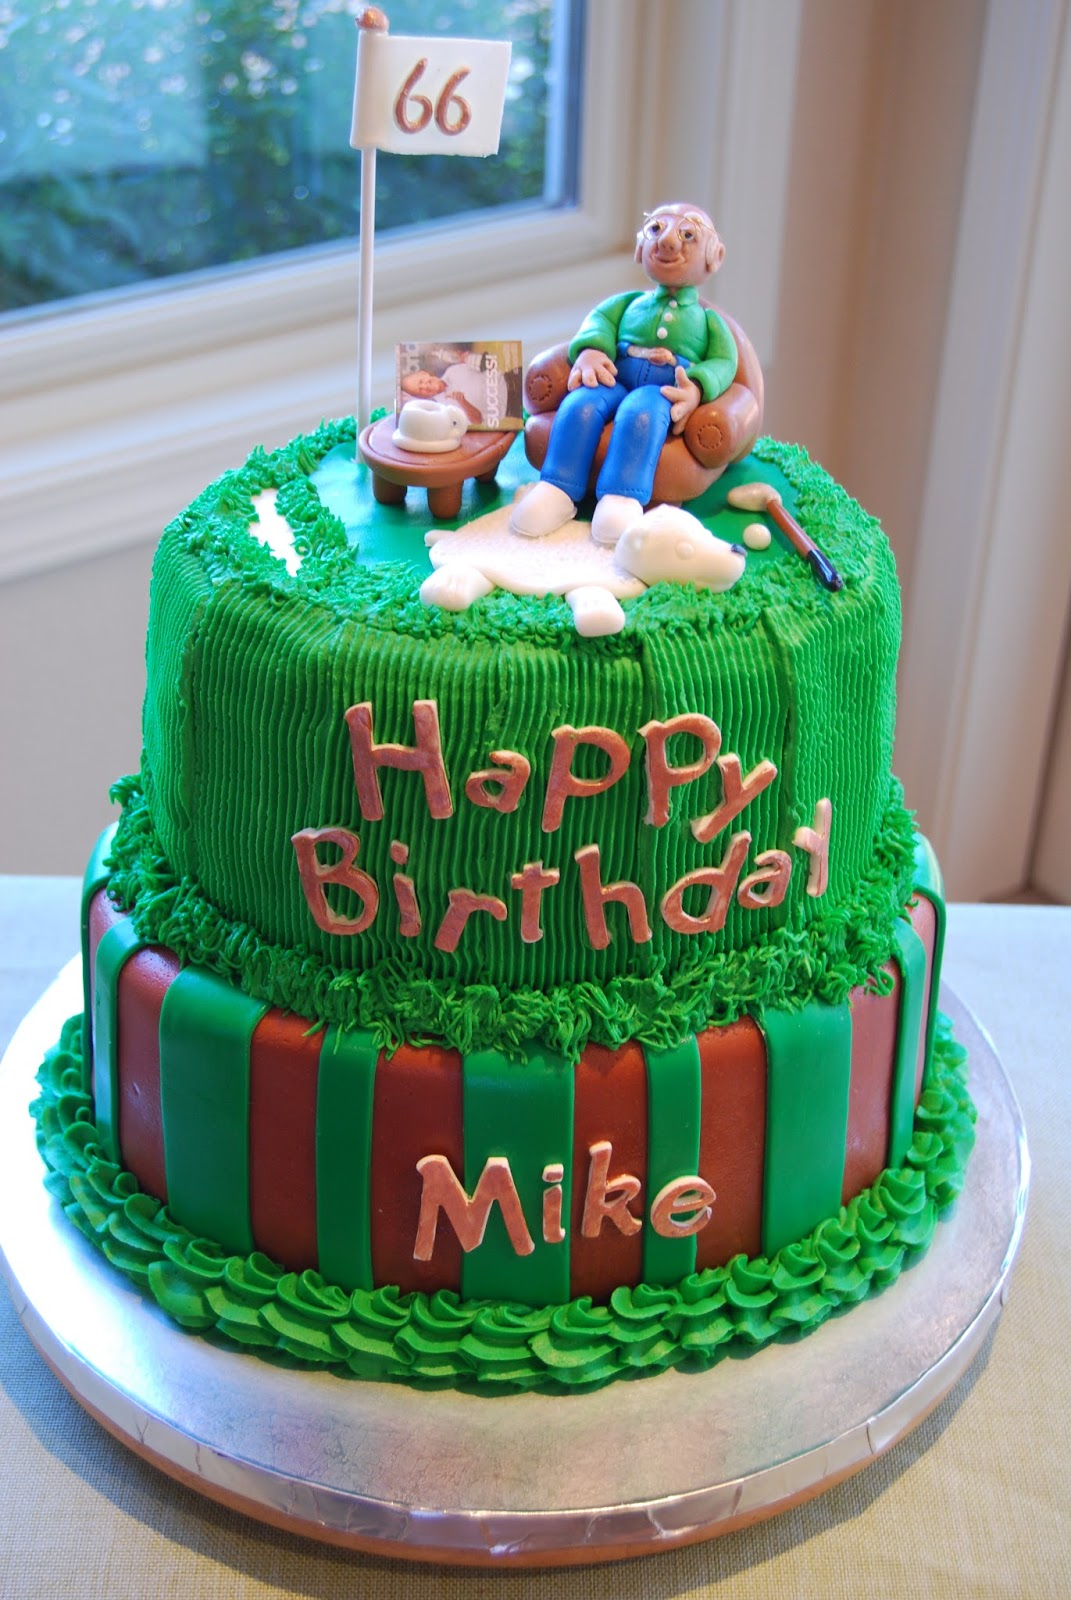 Happy Birthday Mike Cake 10 60th Cakes Photo 40th